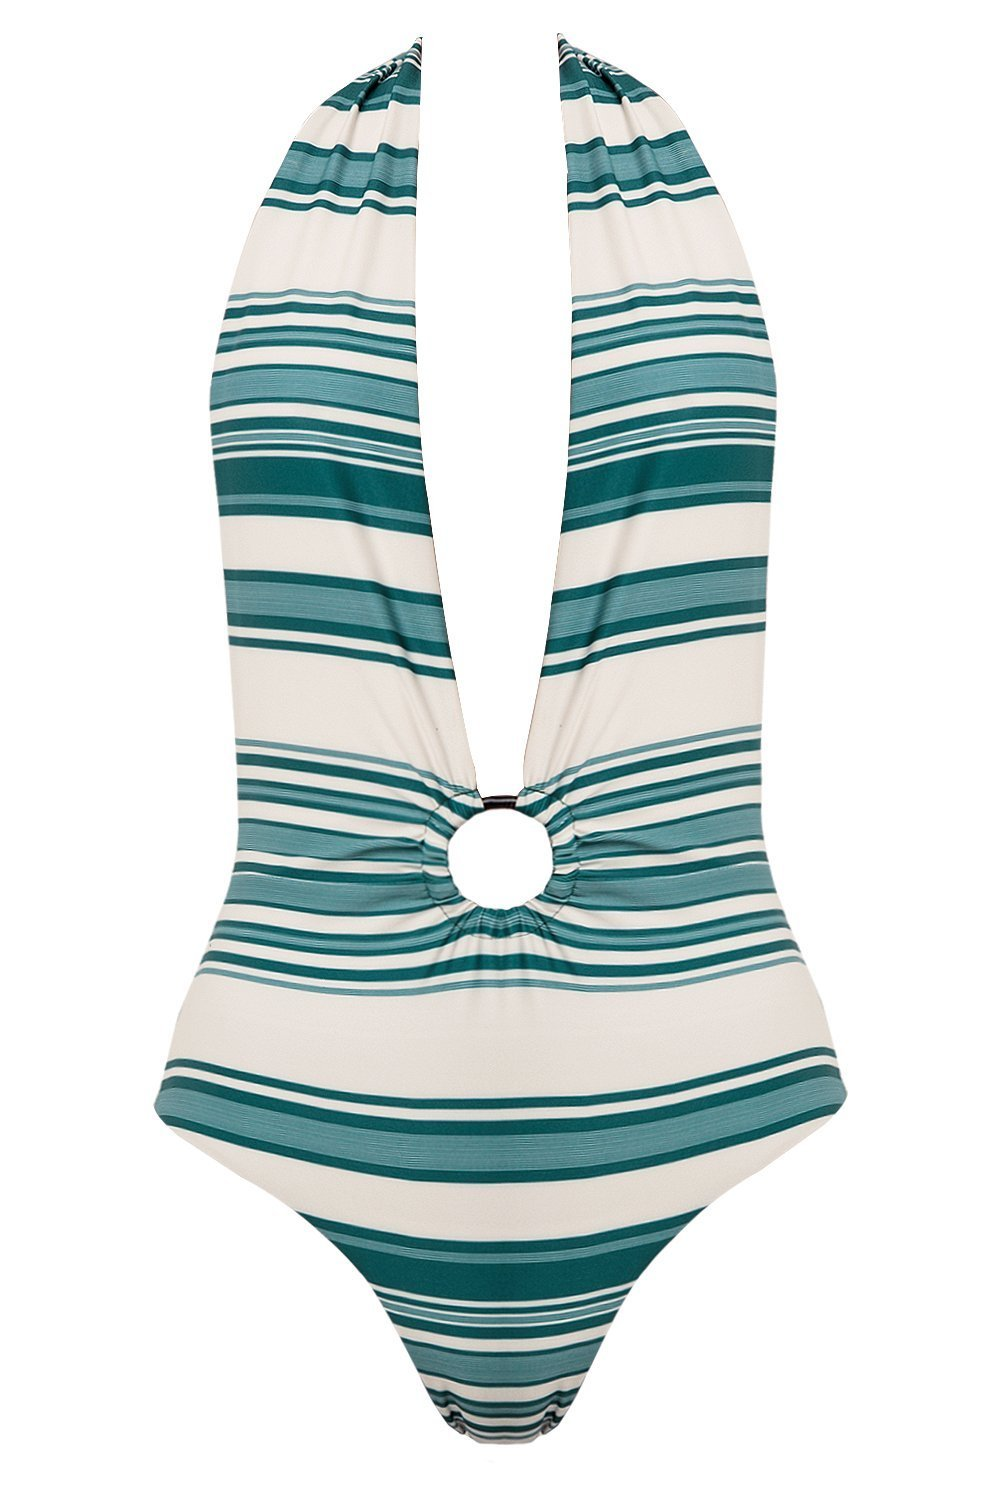 Palm - Harvey Bodysuit in Bauhaus Teal-Palm Swimwear-Nomads Cove